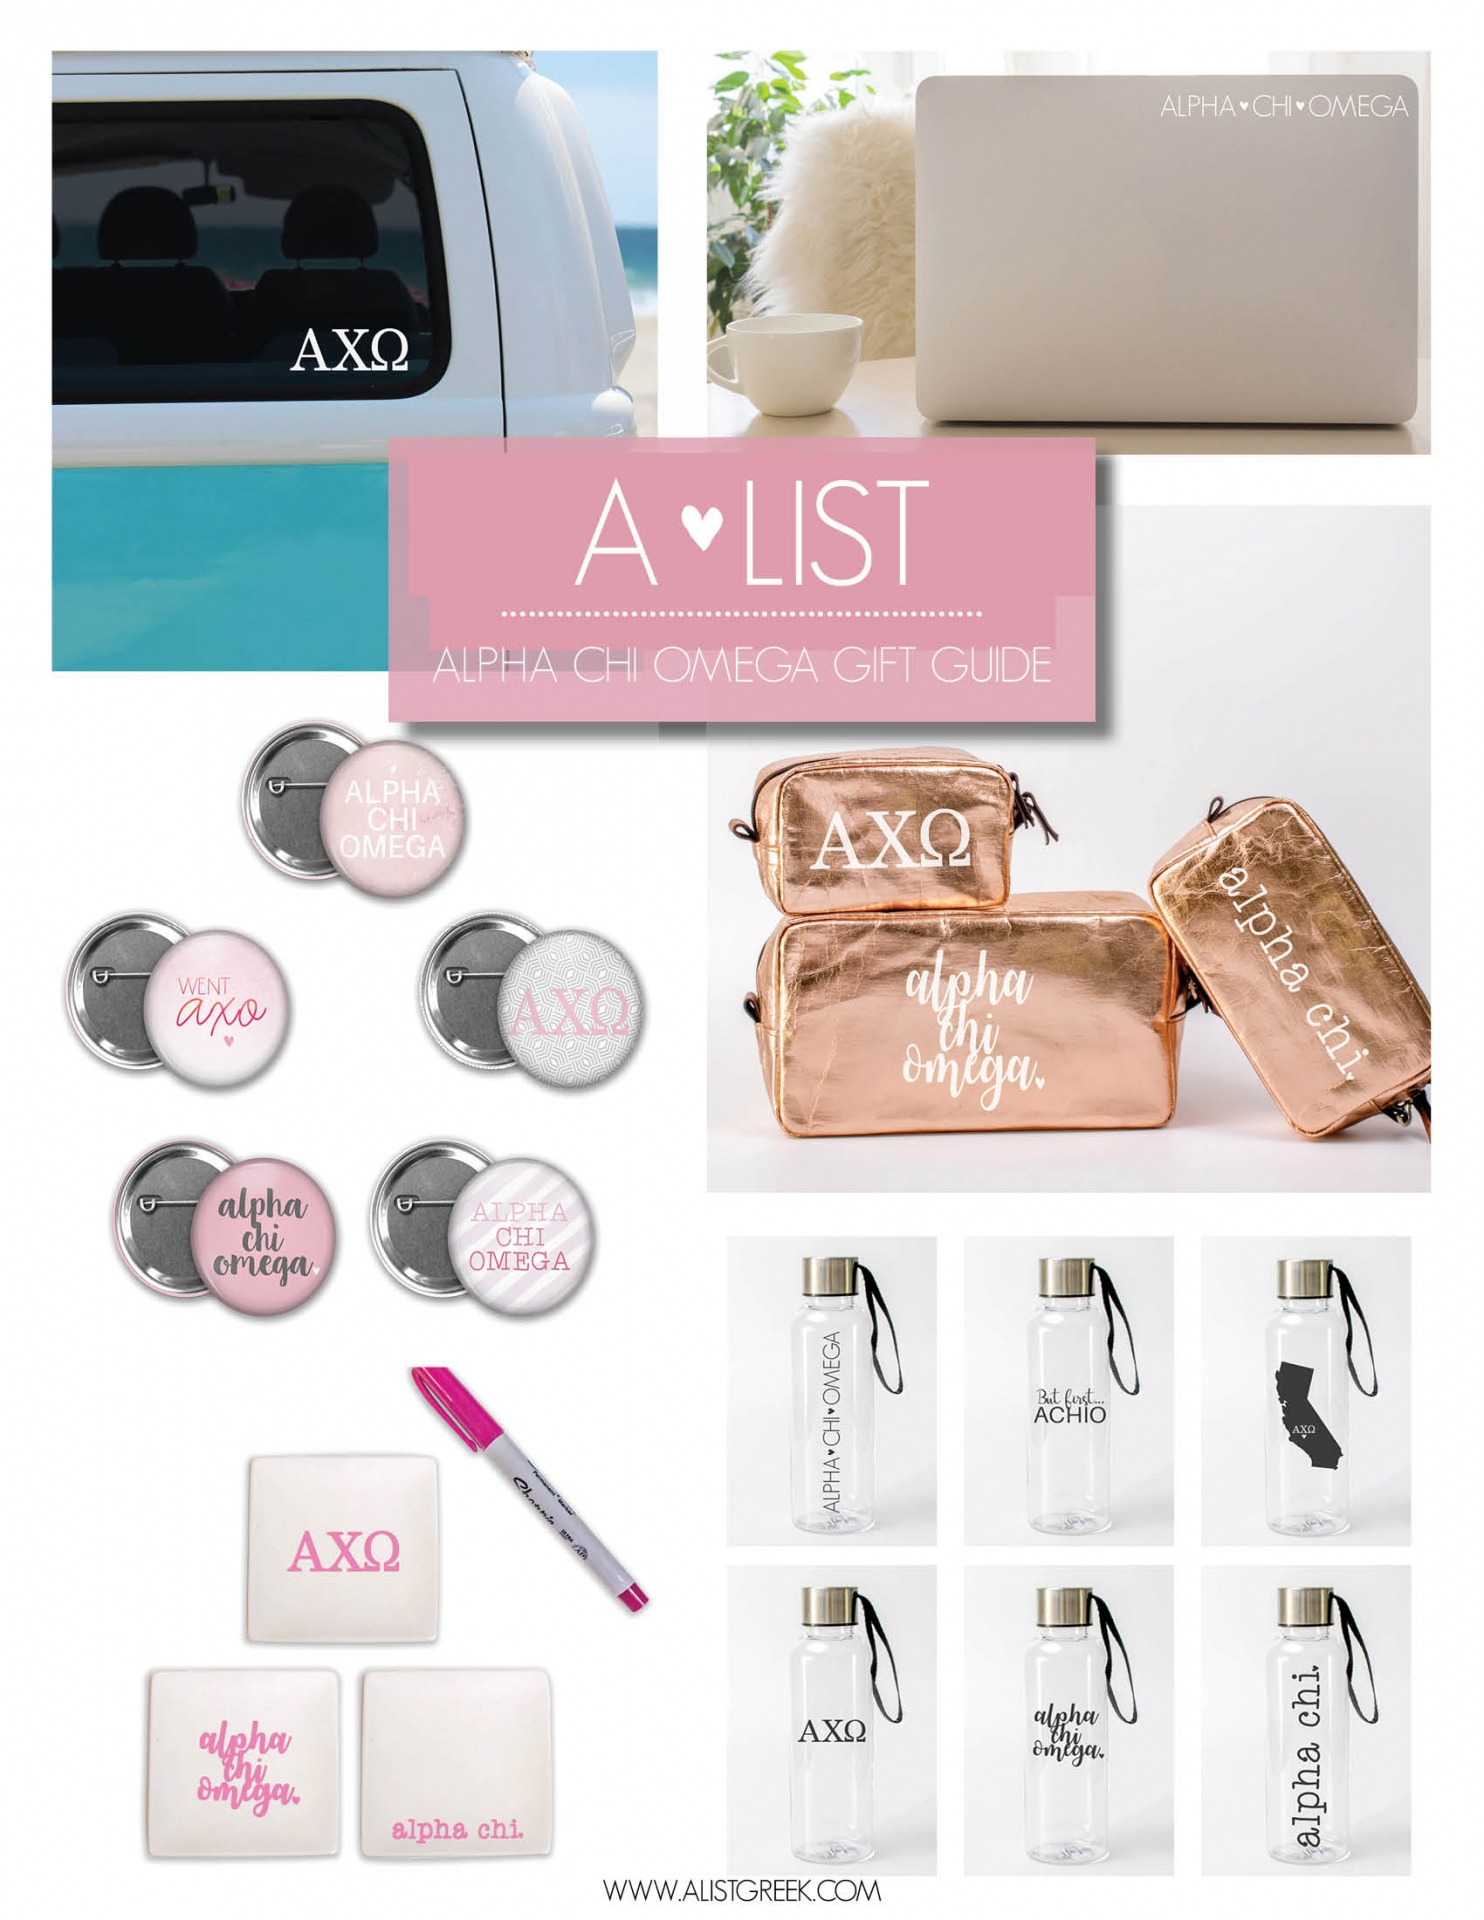 Alpha Chi Omega Gifts from www.alistgreek.com